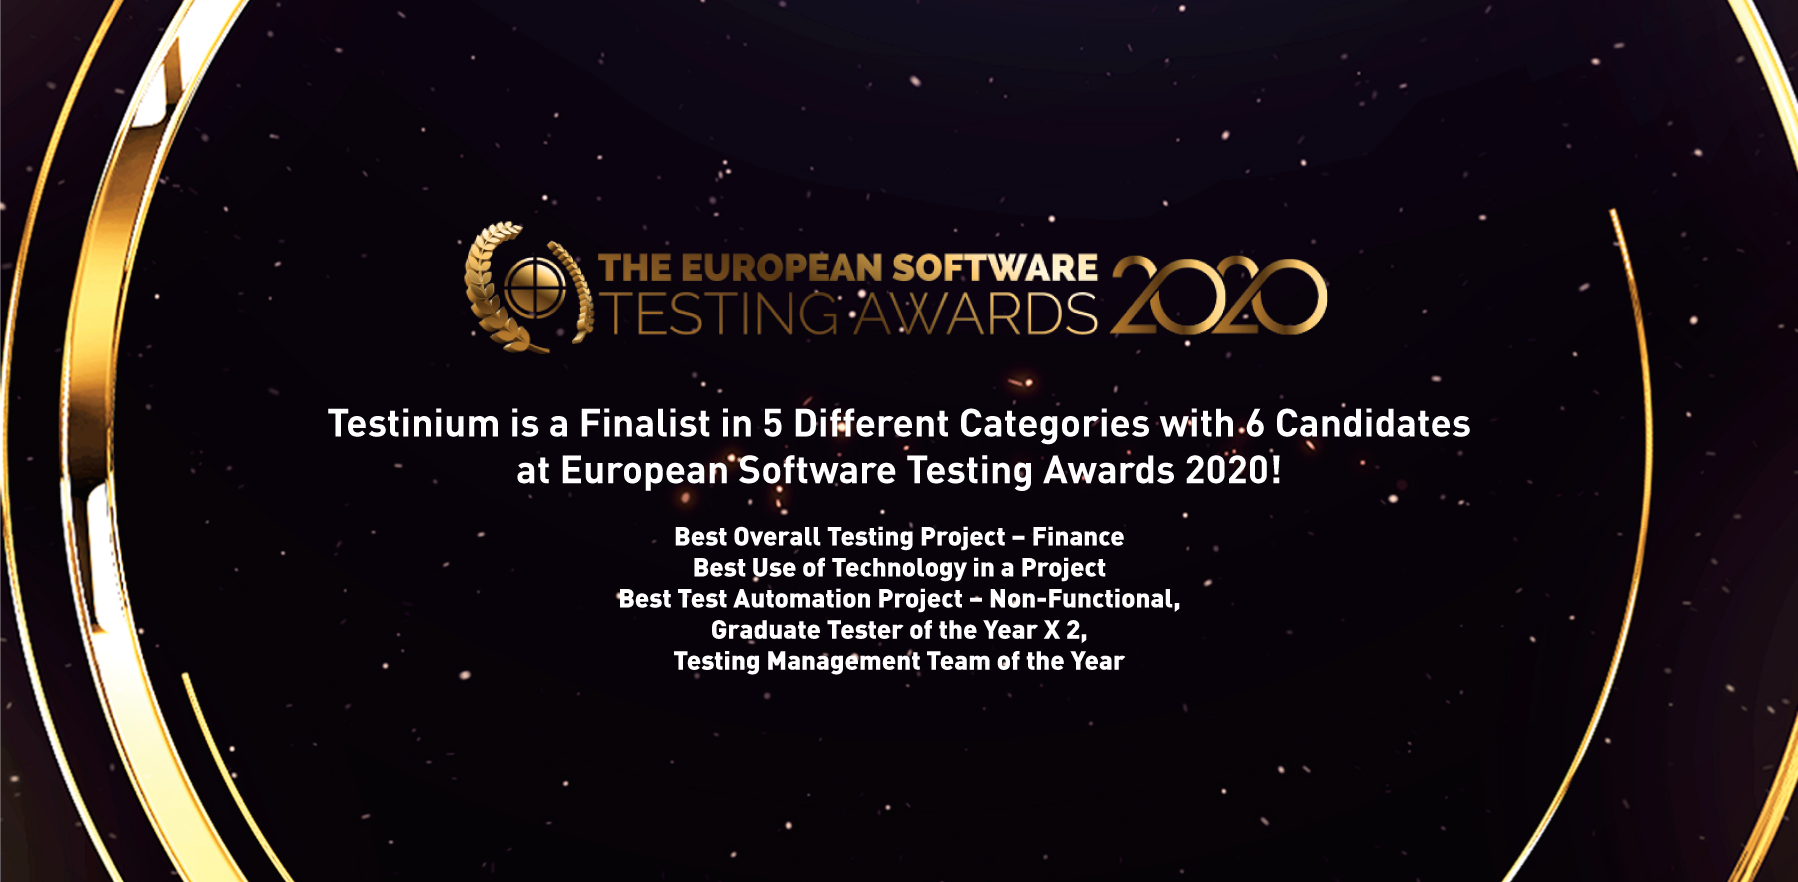 Testinium is a Finalist in Five Different Categories with 6 Candidates at European Software Testing Awards 2020!